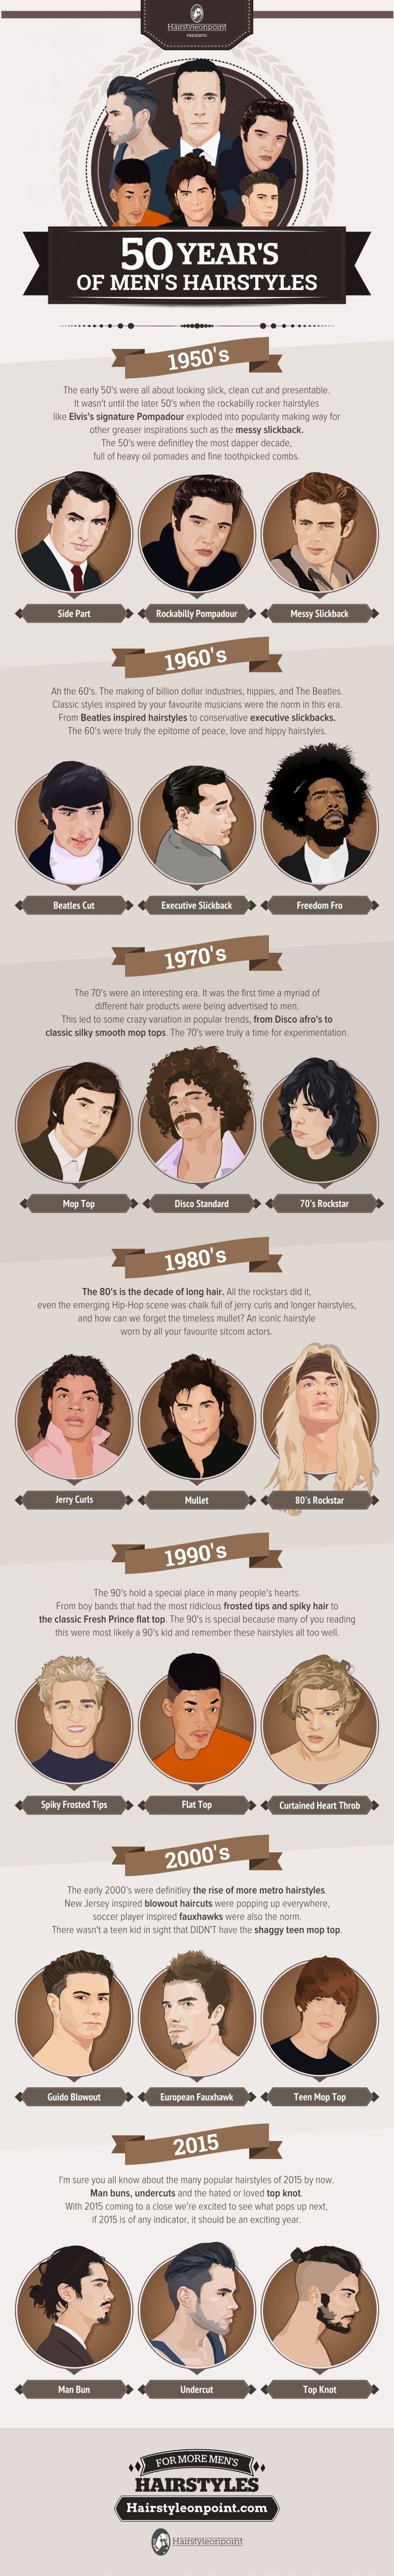 50 Years of Men's Hairstyles | Visual.ly - http://visual.ly/50-years-mens-hairstyles